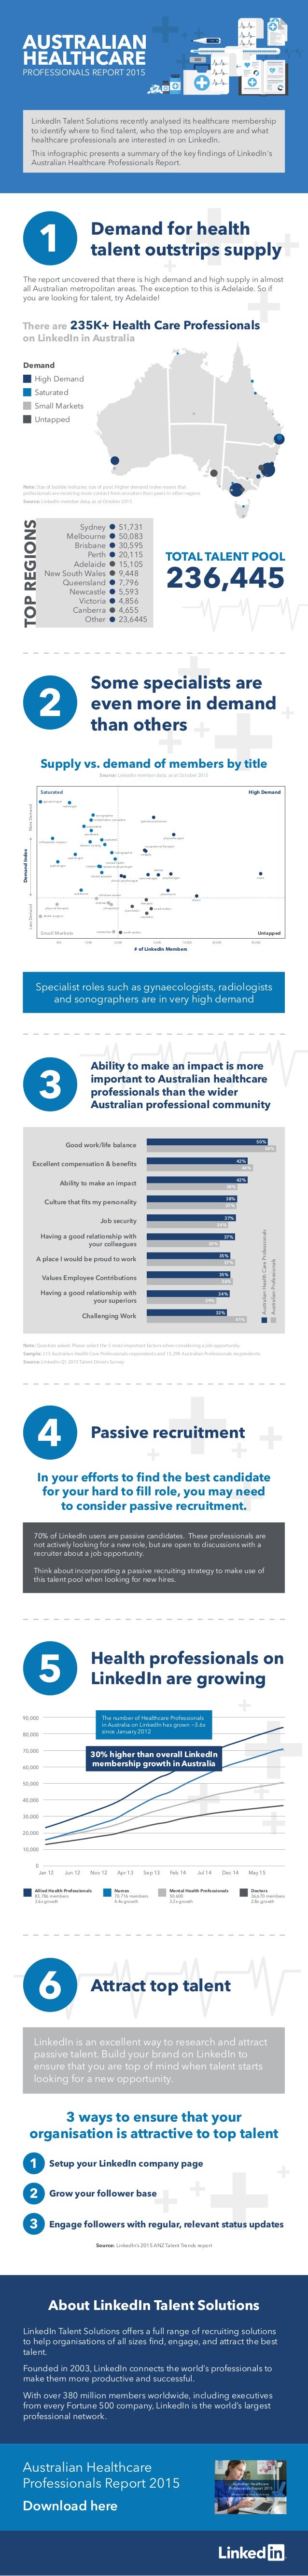 AUSTRALIAN HEALTHCARE PROFESSIONALS REPORT 2015 Demand for health talent outstrips supply1 Some specialists are even more ...